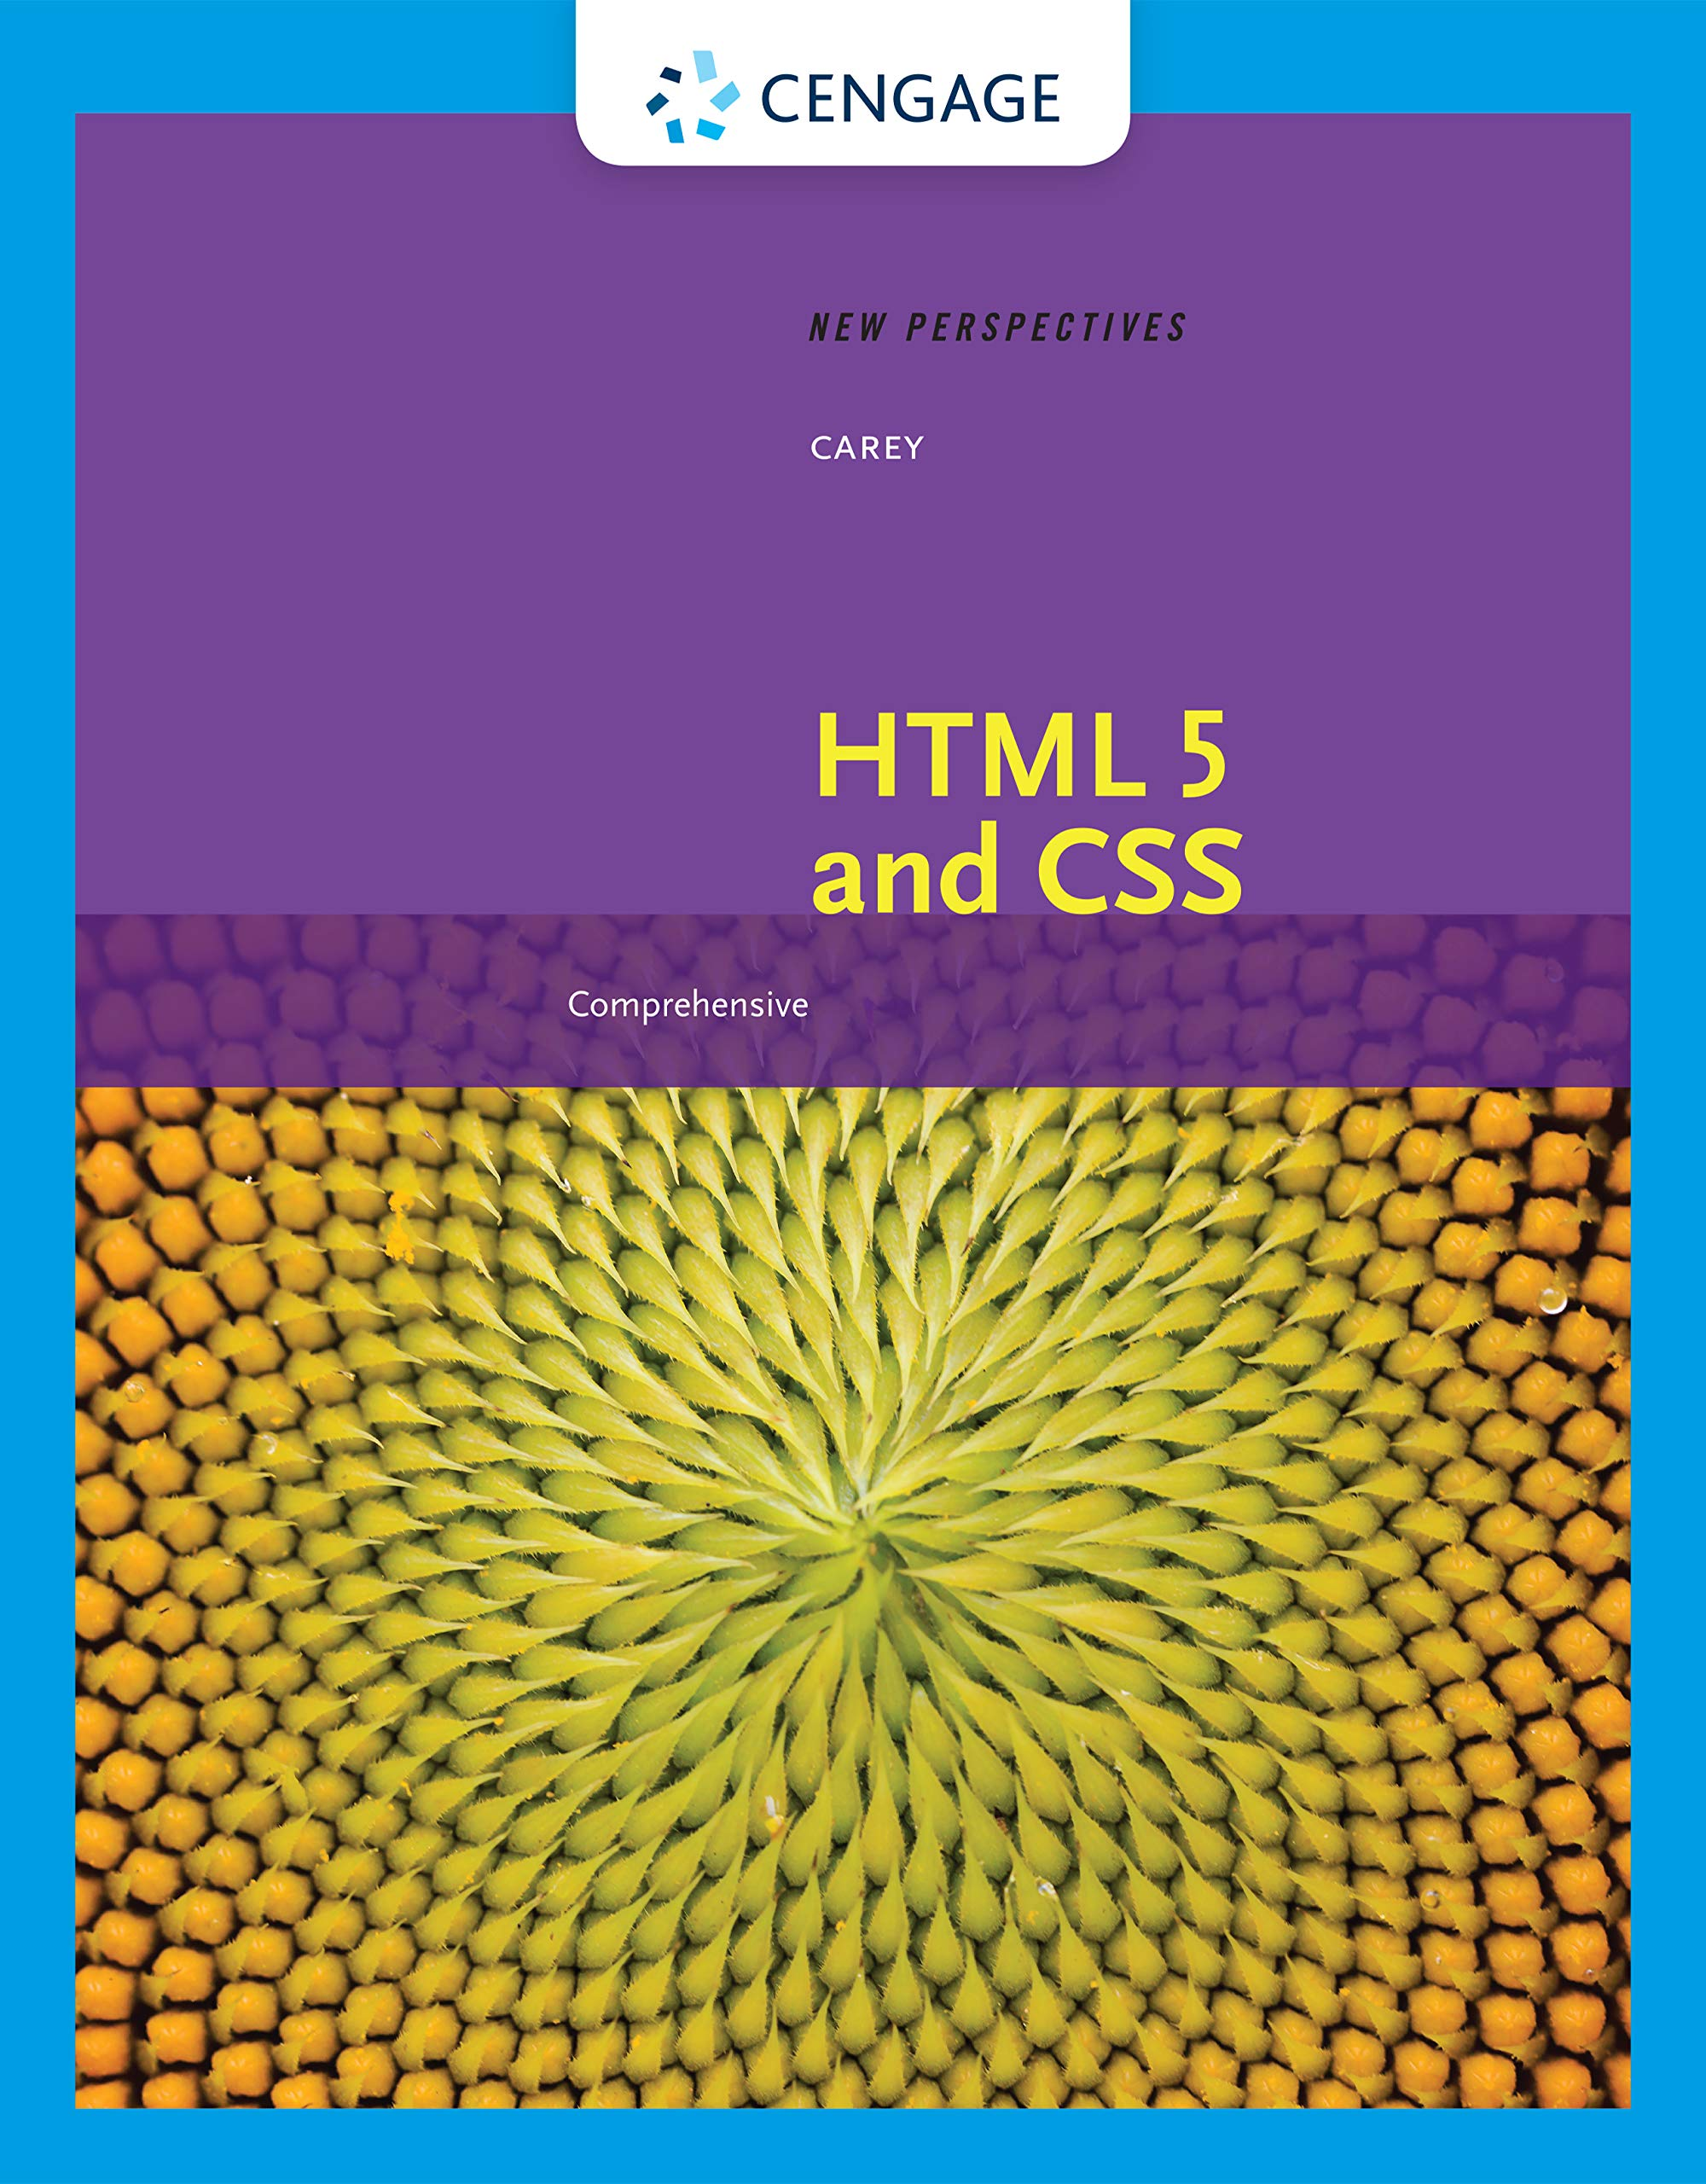 New Perspectives On Html 5 And Css Comprehensive Mindtap Course List 008 Carey Patrick M Ebook Amazon Com